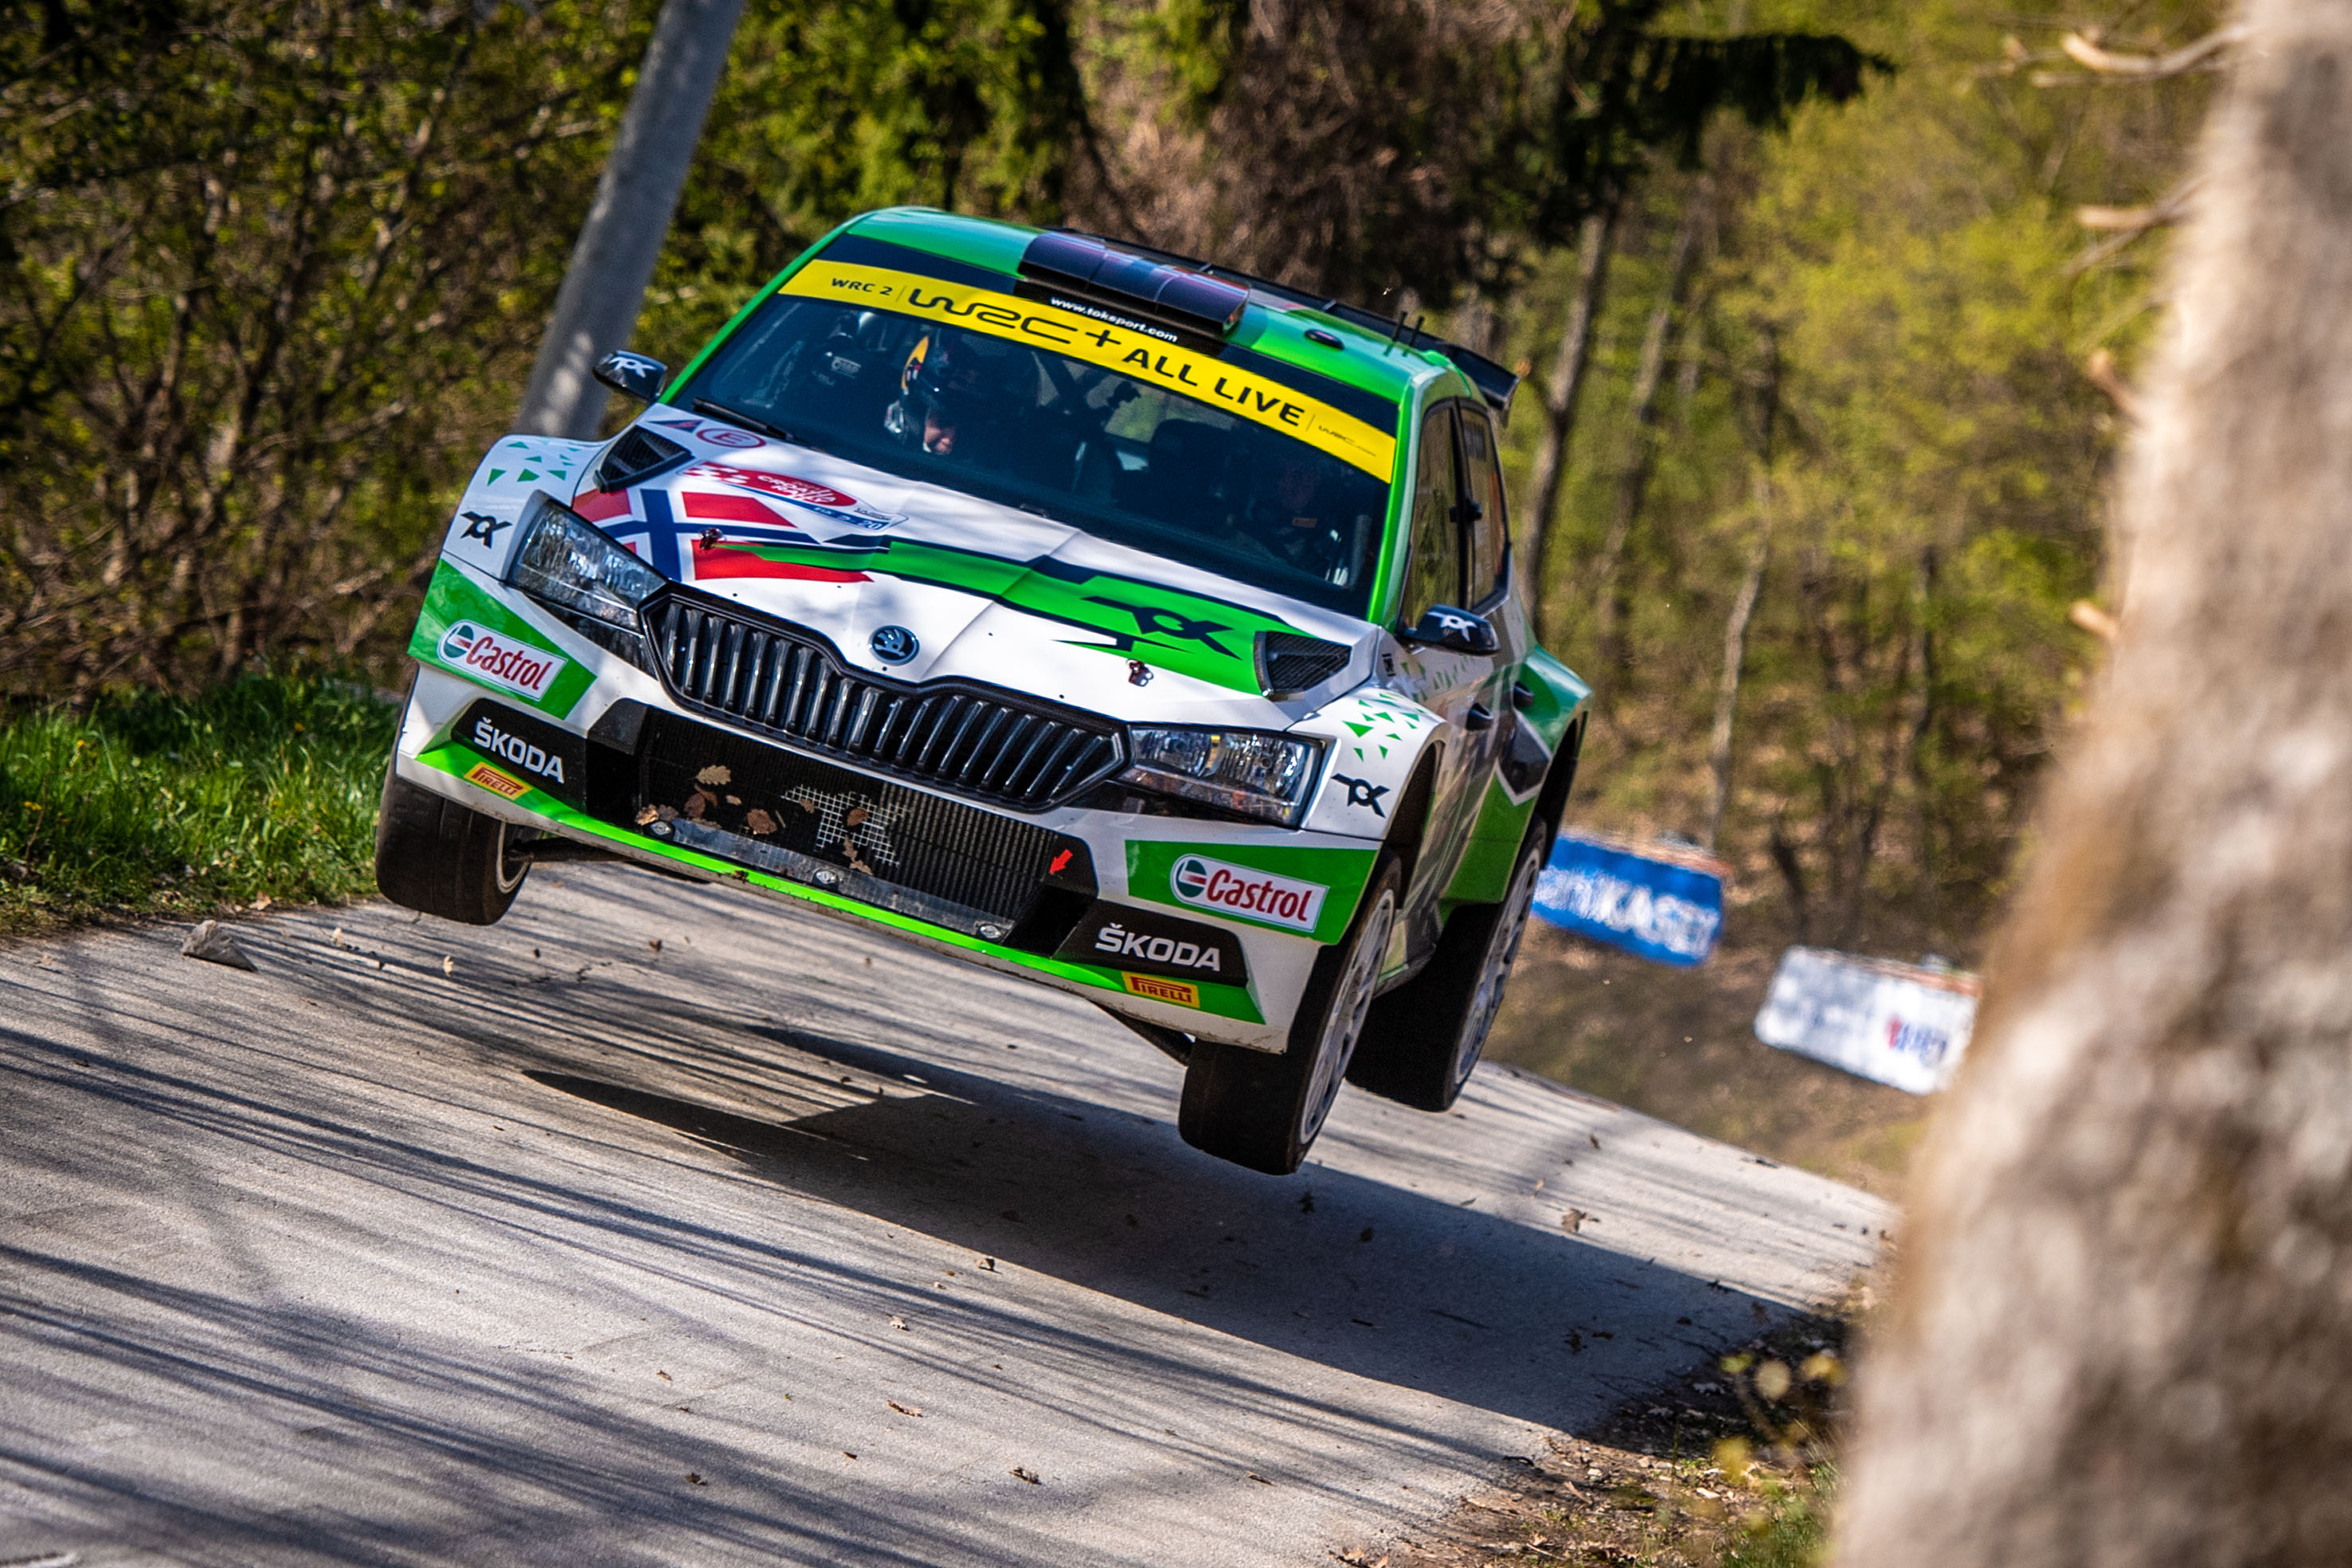 Rally Italia Sardegna: SKODA crews fight for victories in WRC2 and WRC3 - Image 3